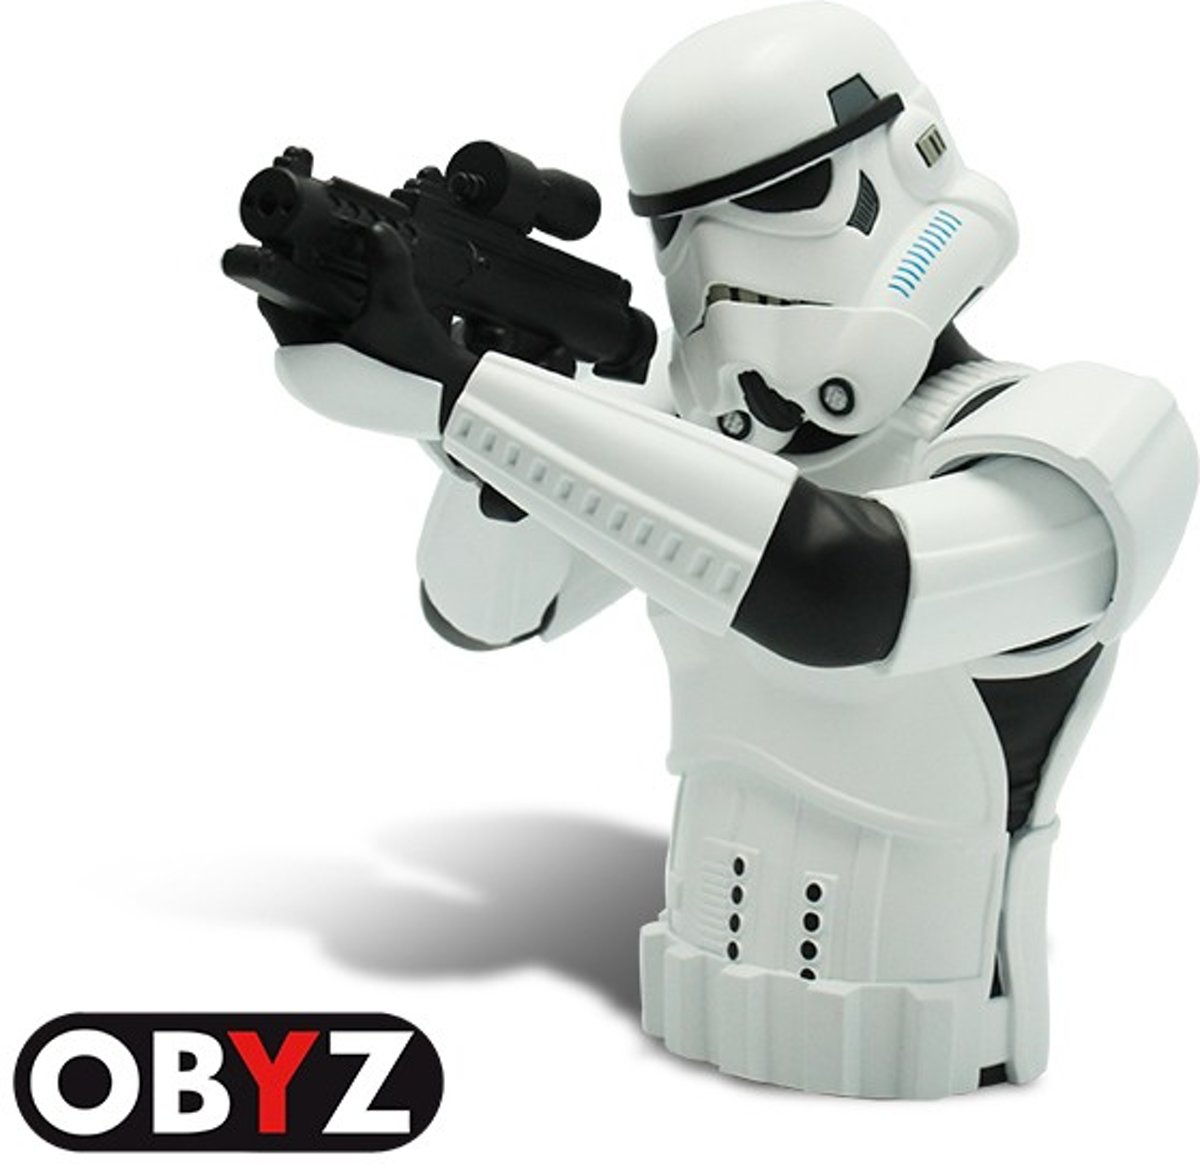 Star Wars Storm Trooper Bust Bank /Toys